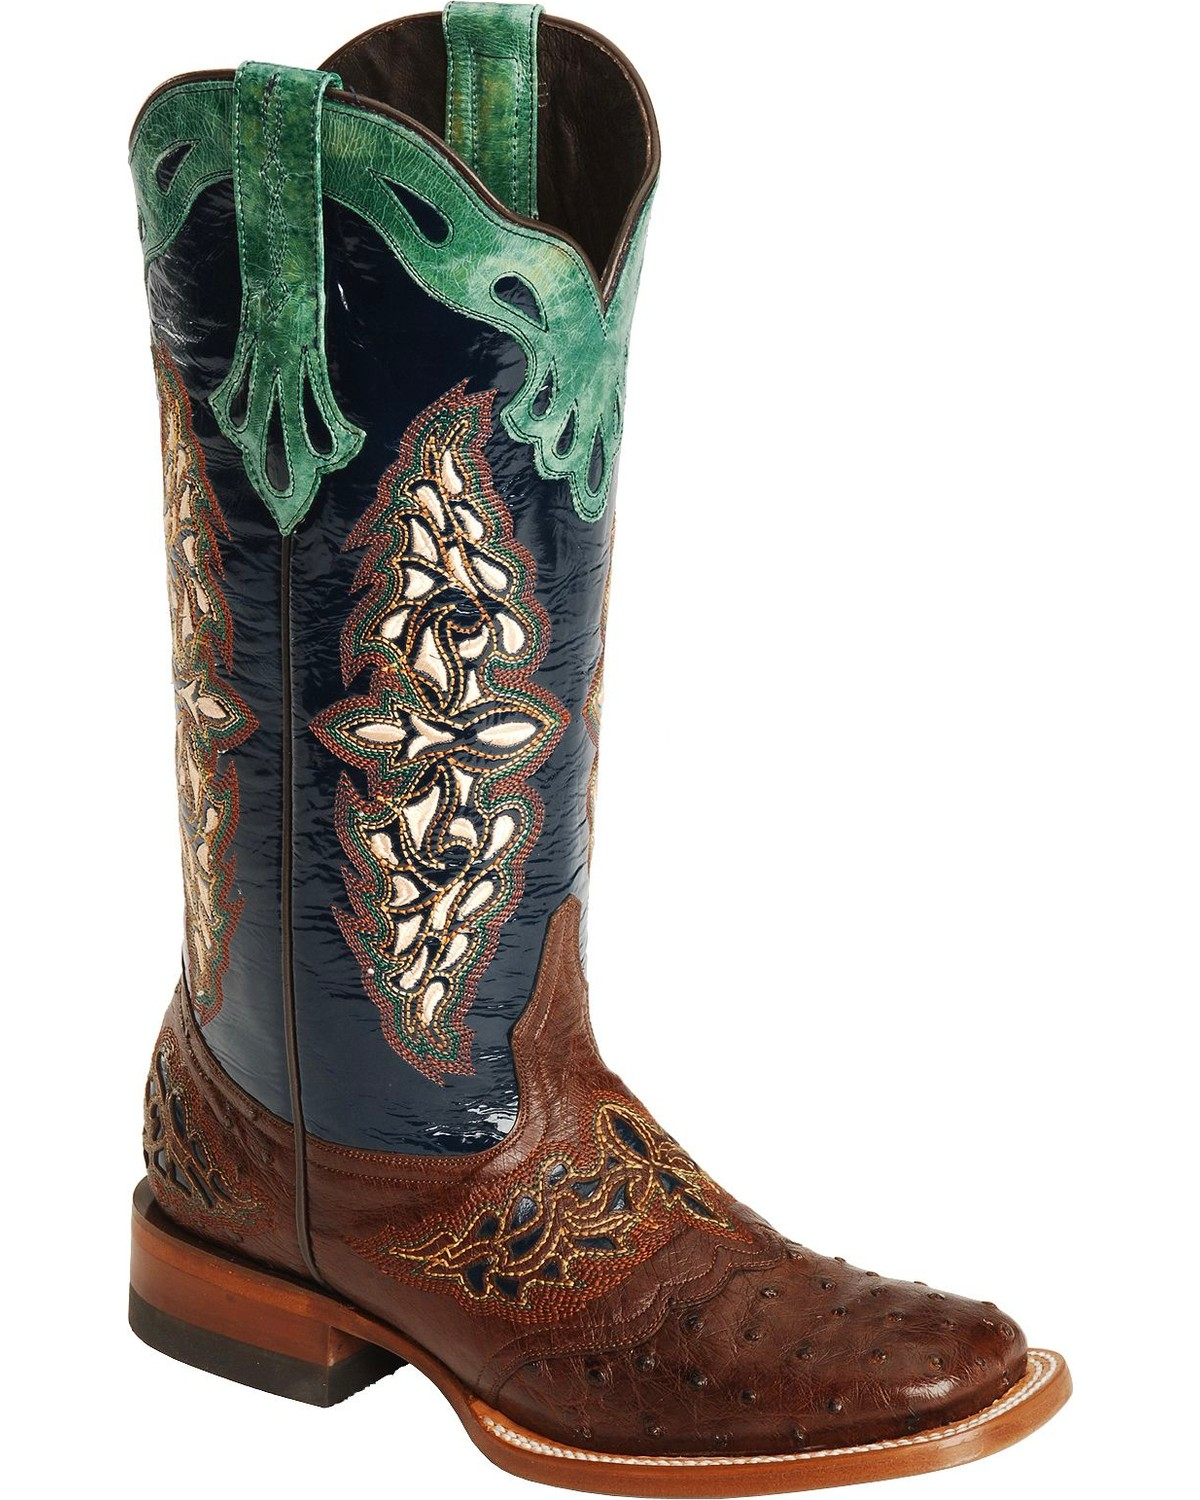 Popular LUCCHESE SINCE 1883 M4812 S54 RED TOOLED WOMENS 8u0026quot; SHORTIE WESTERN BOOTS | EBay